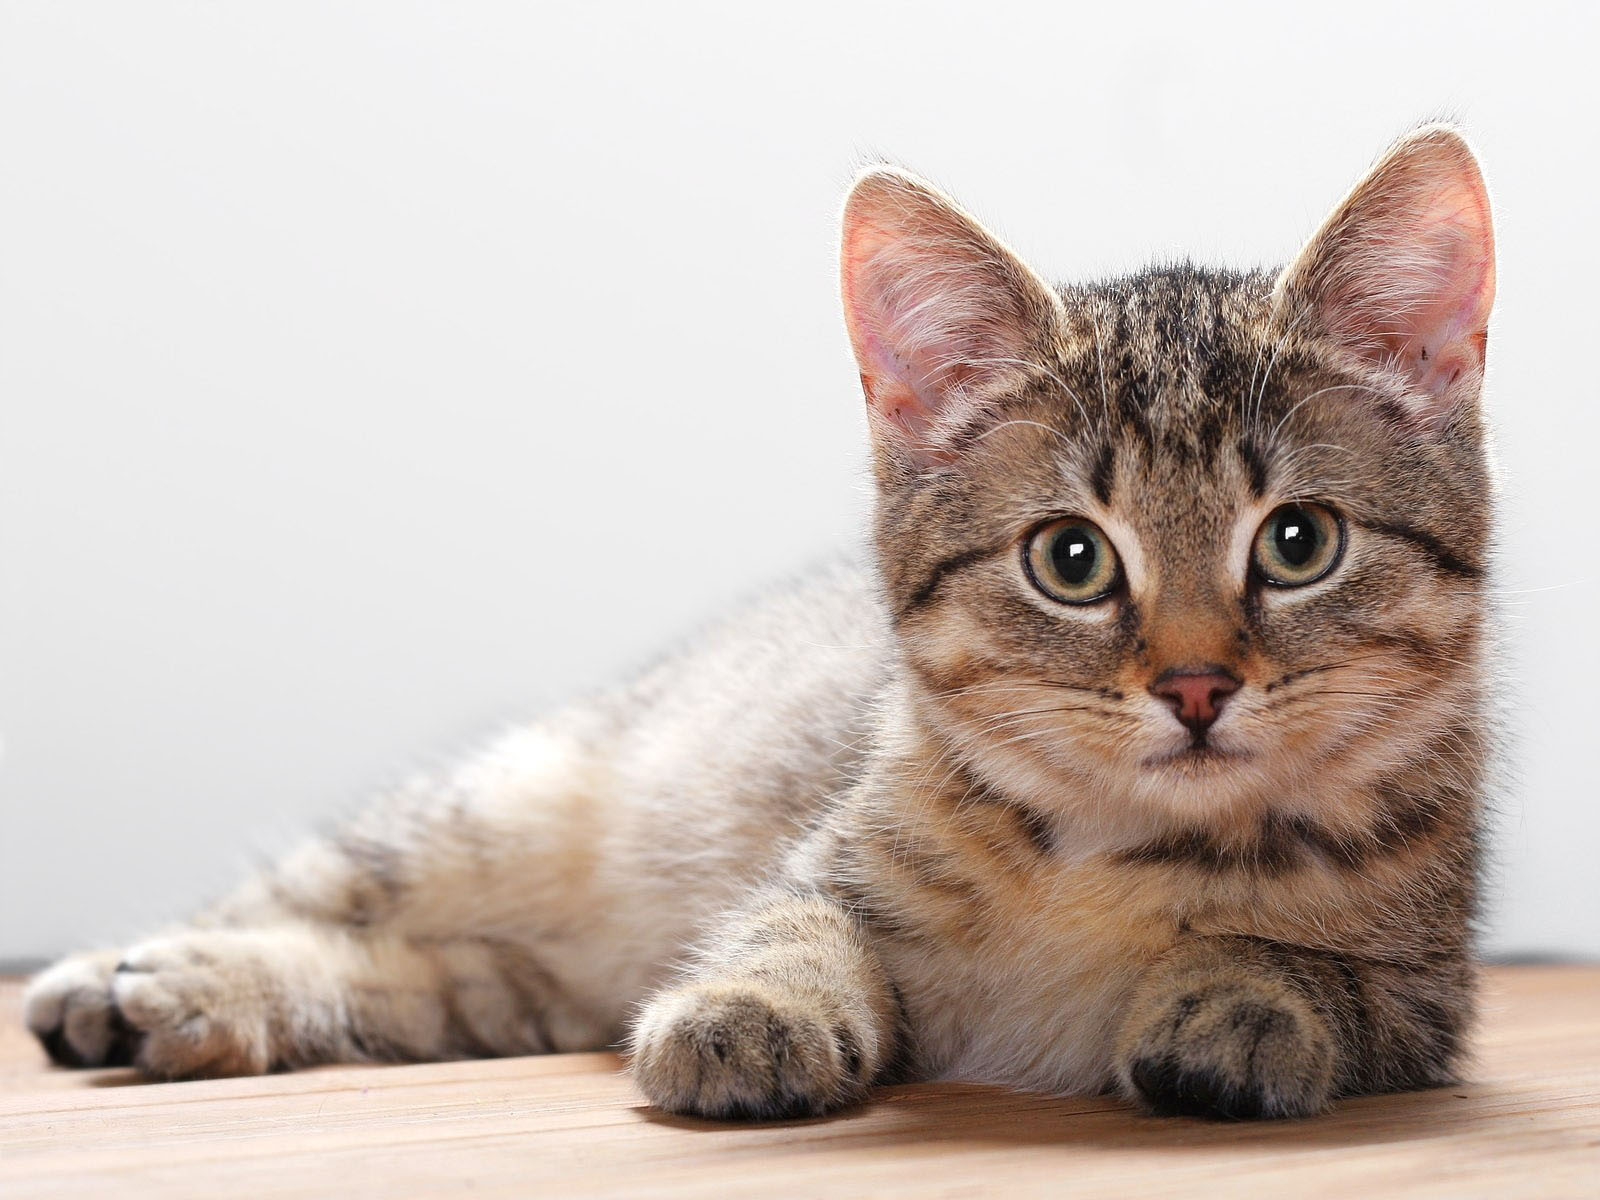 Wallpapers meow meow cat wallpapers - Free wallpaper of kittens ...